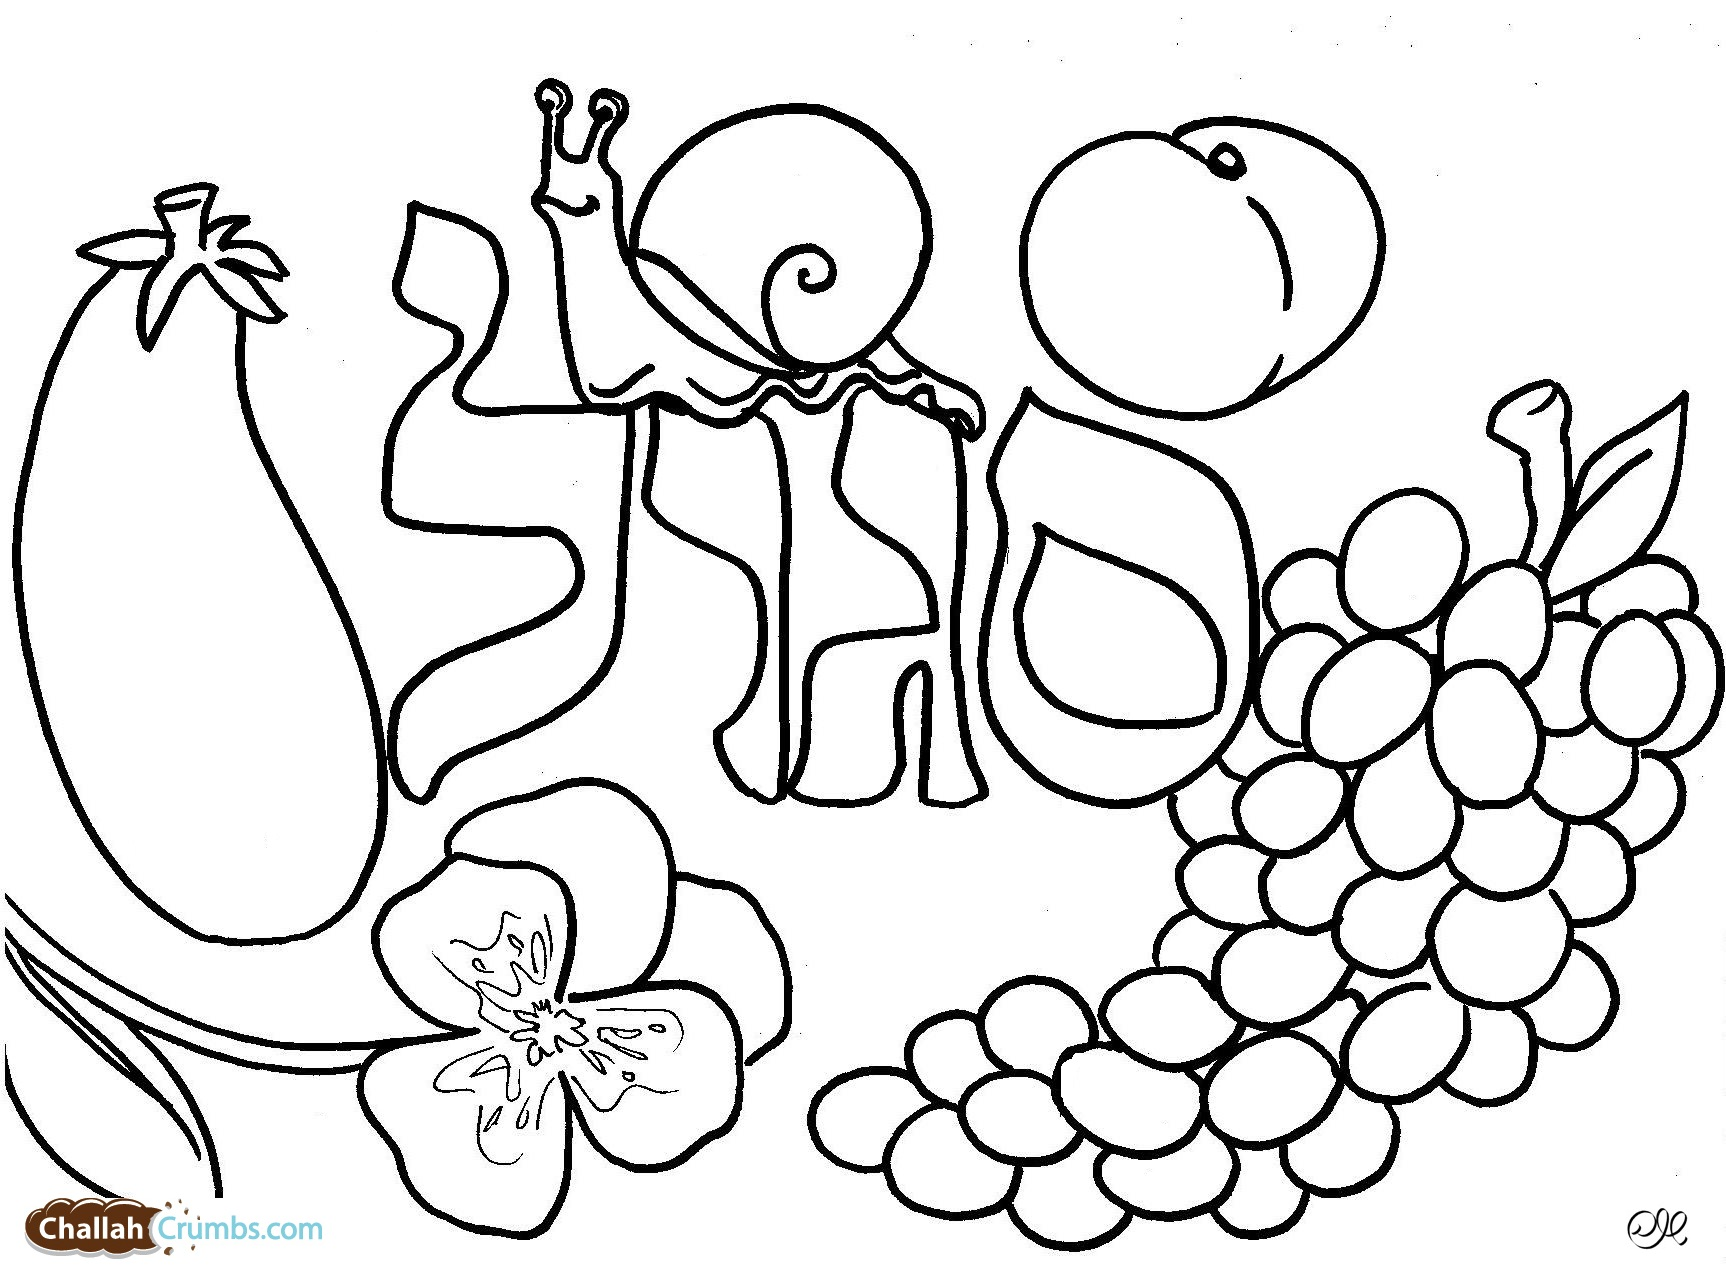 Free Fruit Salad Coloring Pages Sketch Coloring Page